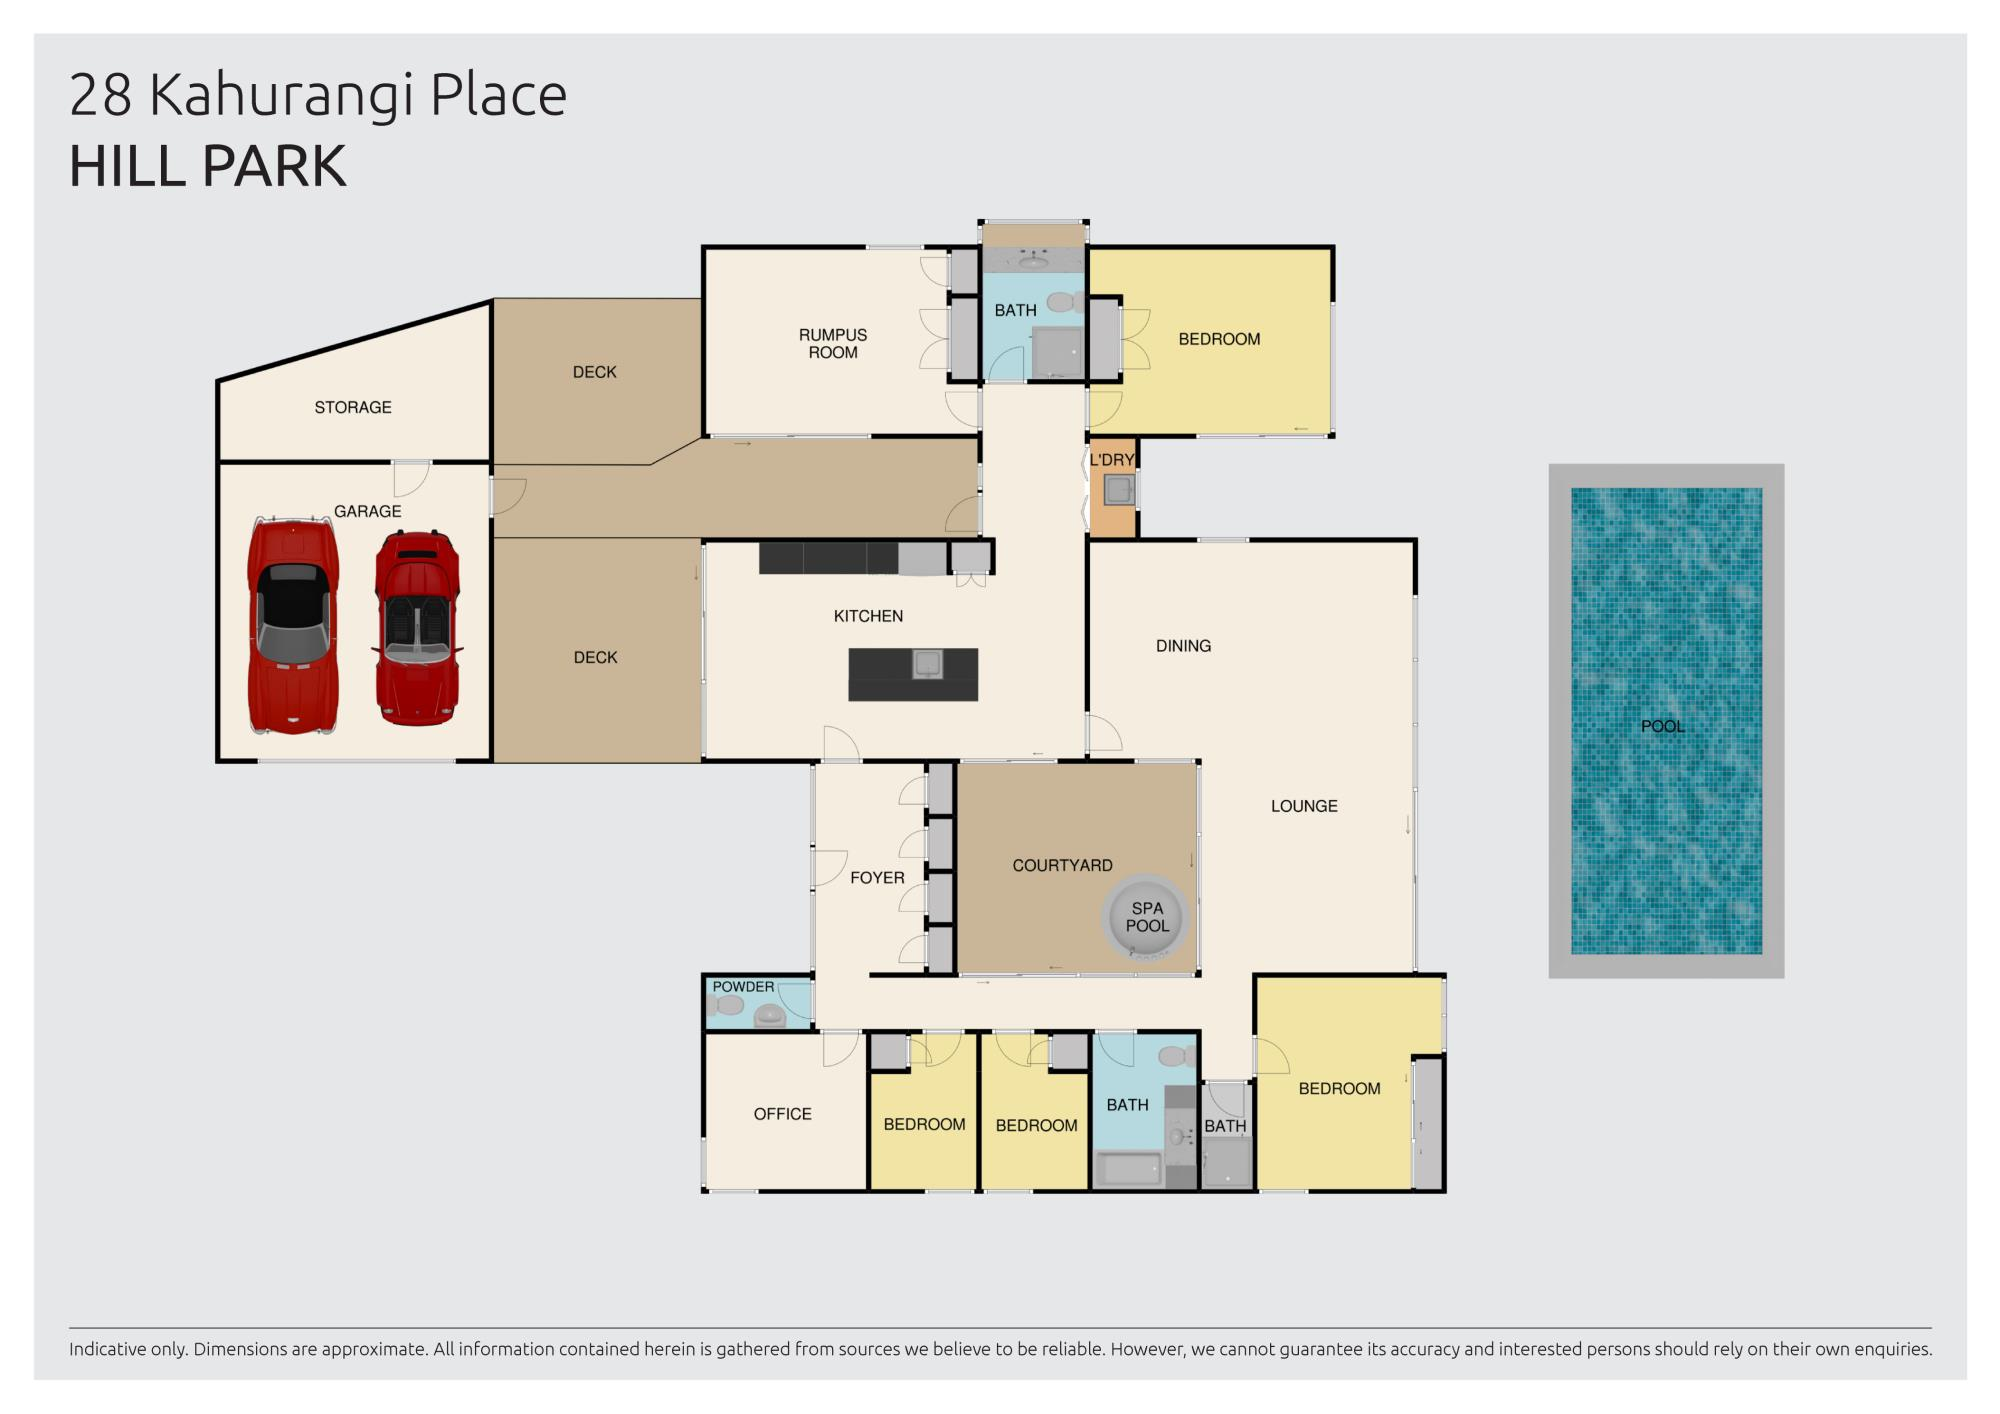 28 Kahurangi Place, Manurewaproperty floorplan image